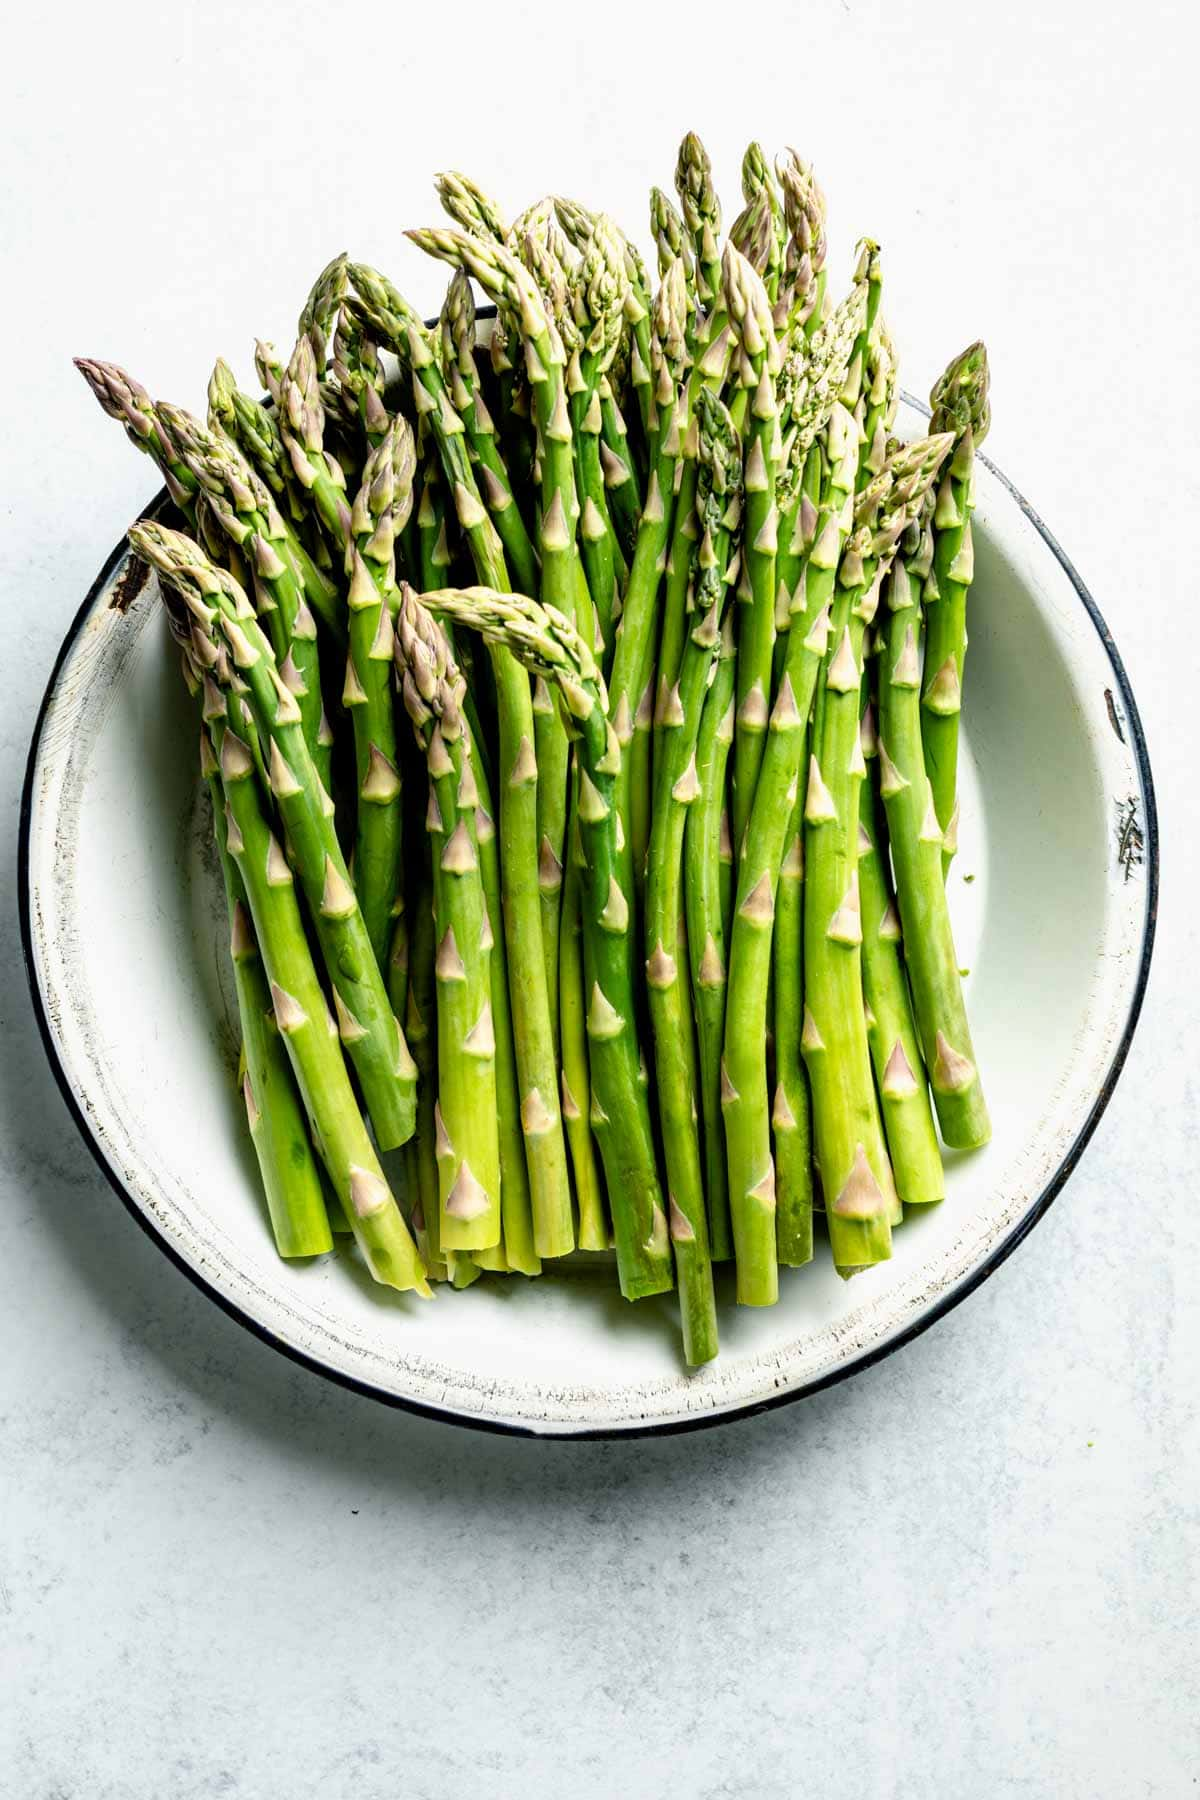 A large bowl of fresh green asparagus stalks.